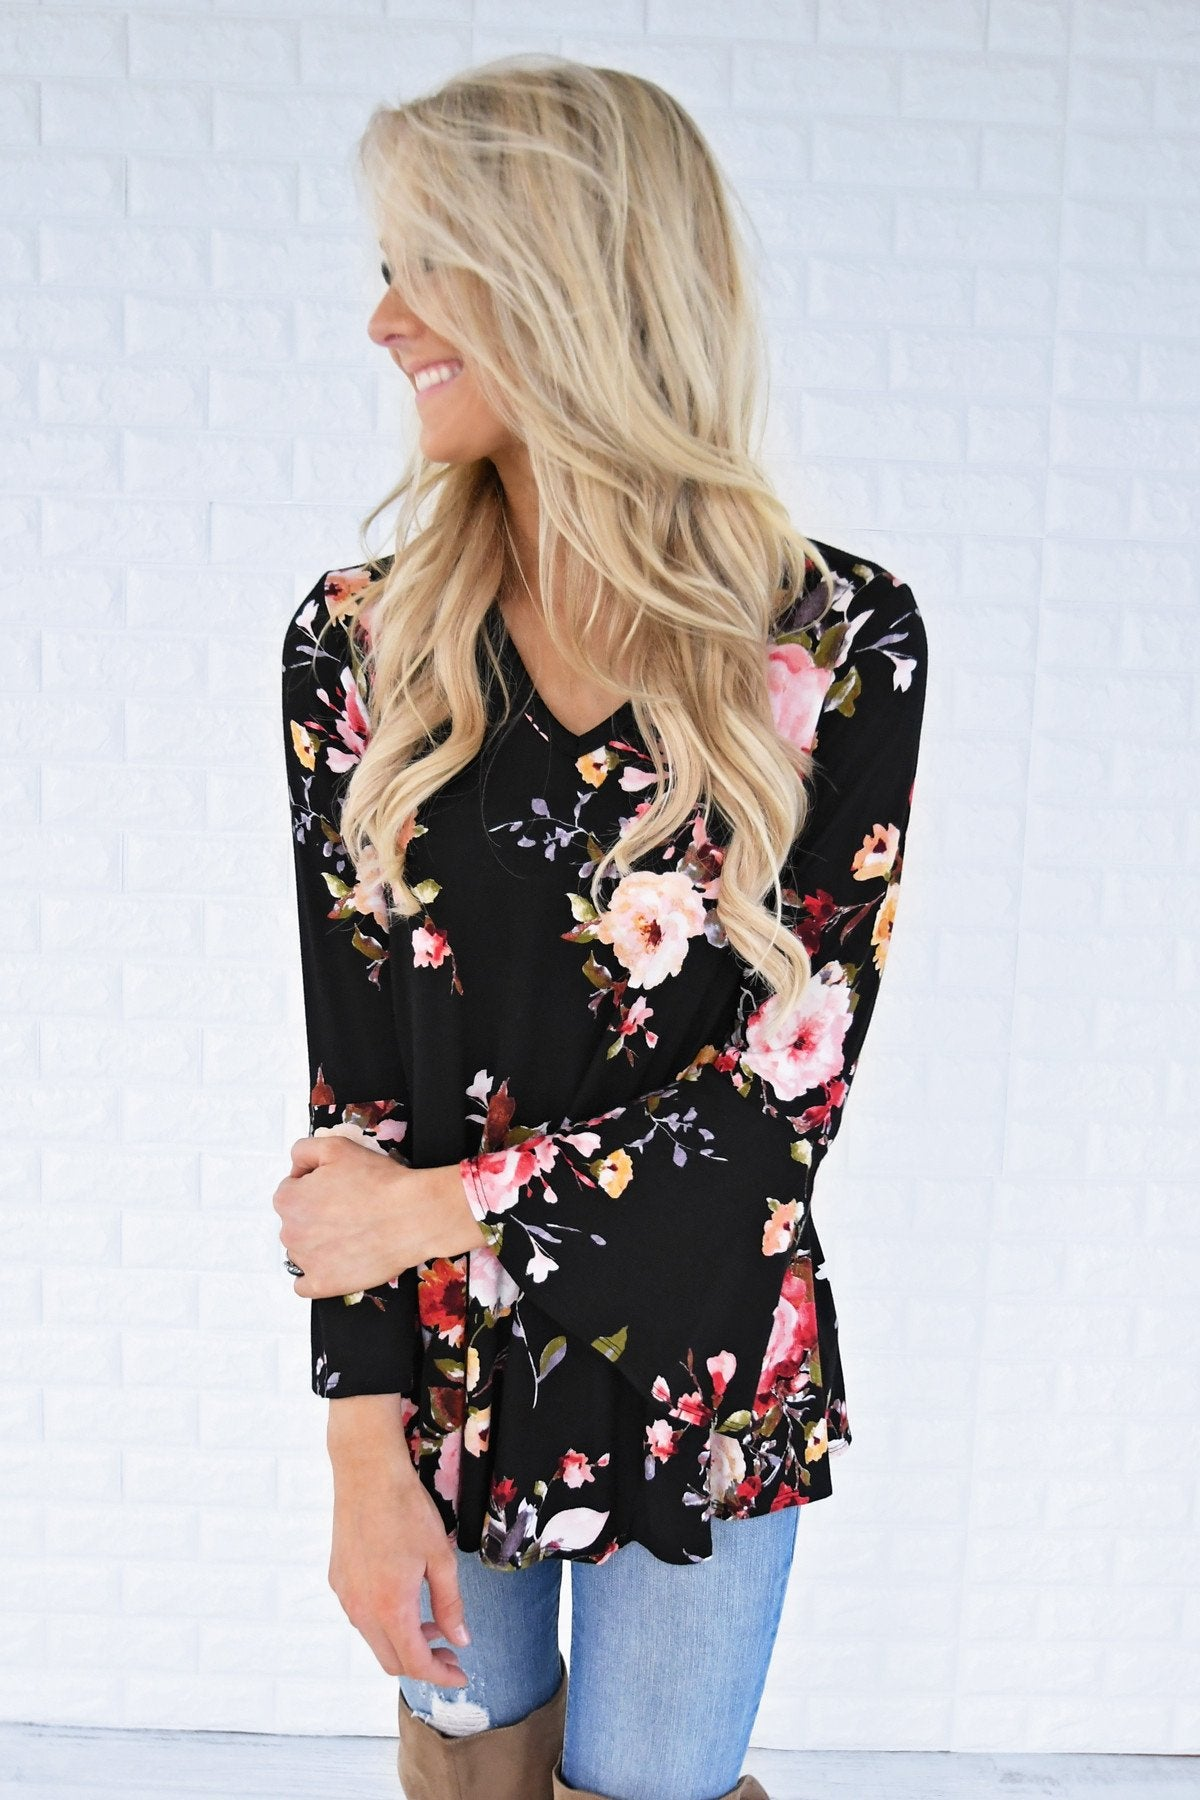 Southern Belle Floral Top in Black